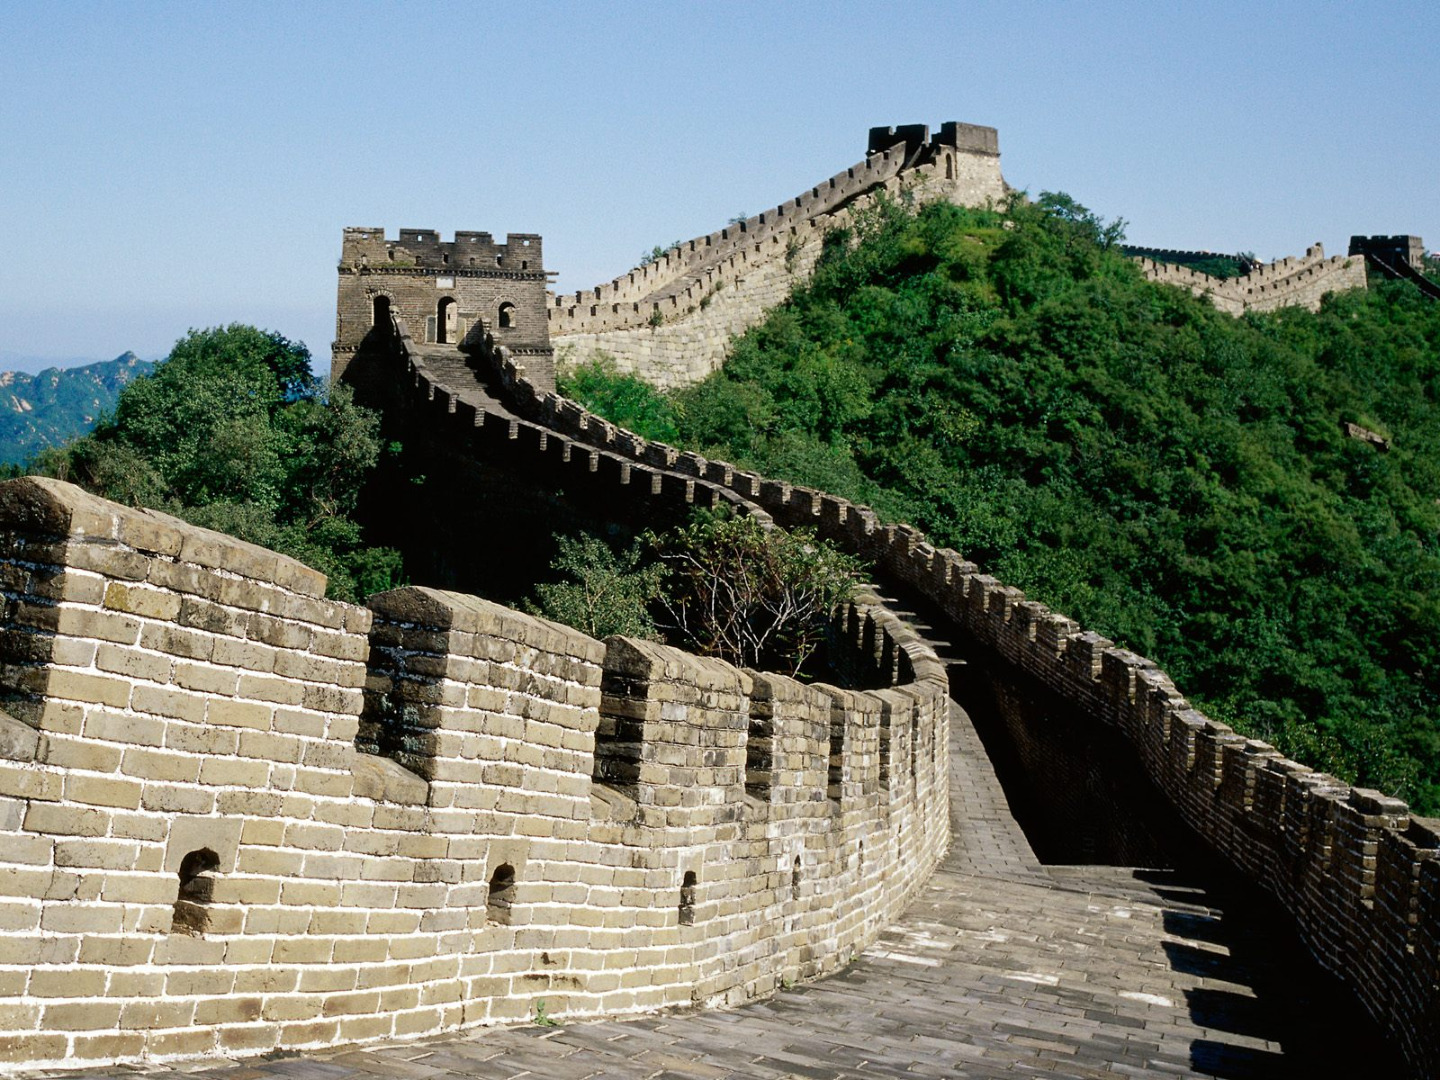 Picture from Wallerz.  The Great Wall of China is a series of fortifications made of stone, brick, tamped earth, wood, and other materials, generally built along an east-to-west line across the historical northern borders of China to protect the Chinese states and empires against the raids and invasions of the various nomadic groups of the Eurasian Steppe. Several walls were being built as early as the 7th century BC; these, later joined together and made bigger and stronger, are now collectively referred to as the Great Wall. Especially famous is the wall built 220–206 BC by Qin Shihuang, the first Emperor of China. Little of that wall remains. Since then, the Great Wall has on and off been rebuilt, maintained, and enhanced; the majority of the existing wall is from the Ming Dynasty.